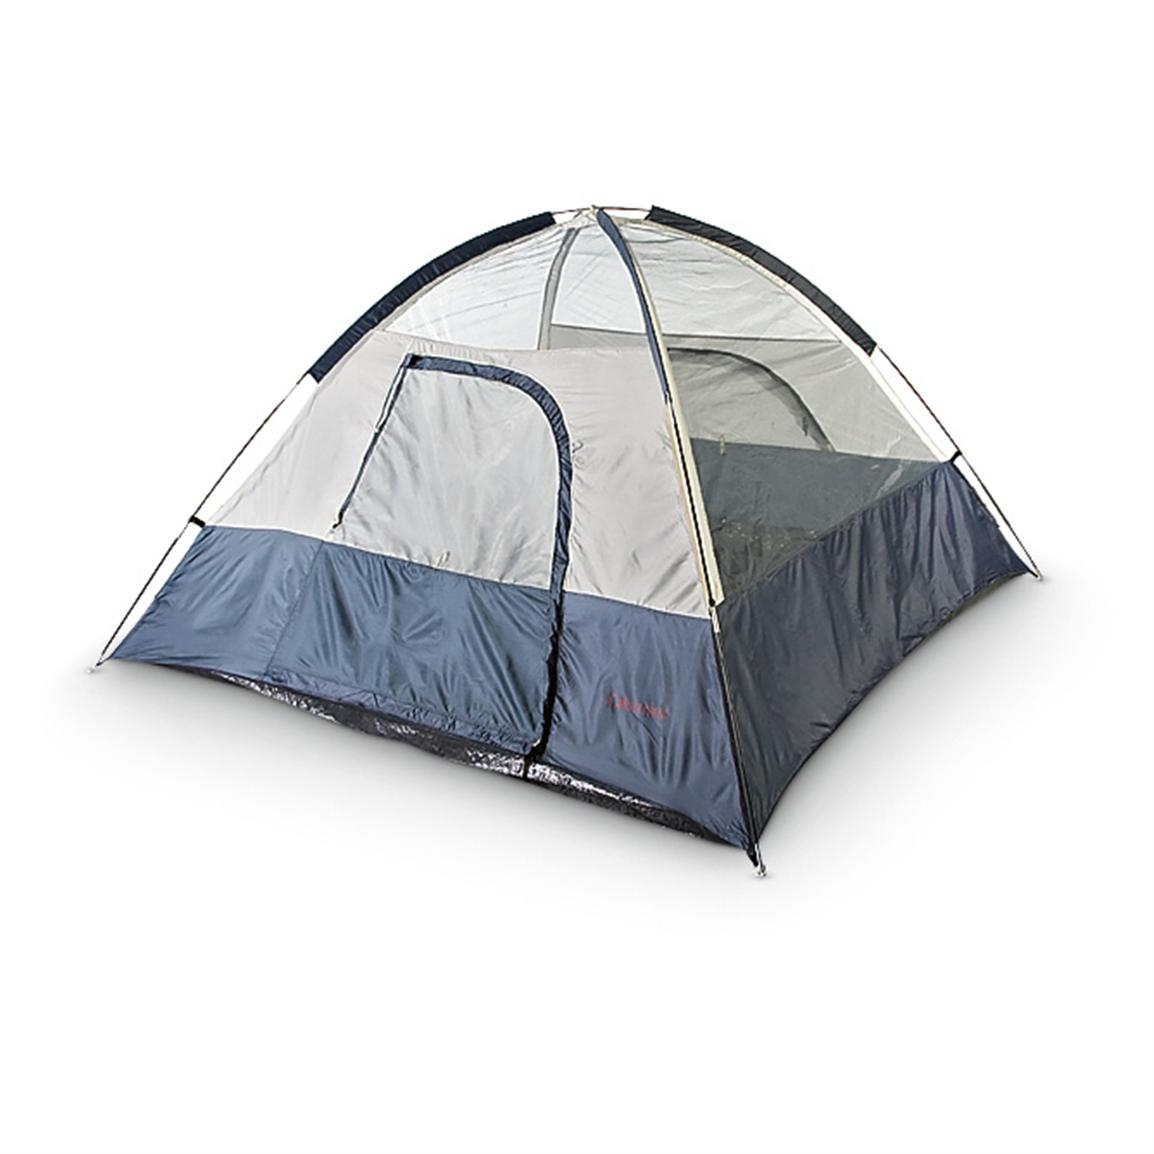 Columbus™ Sunridge Tent, without rainfly